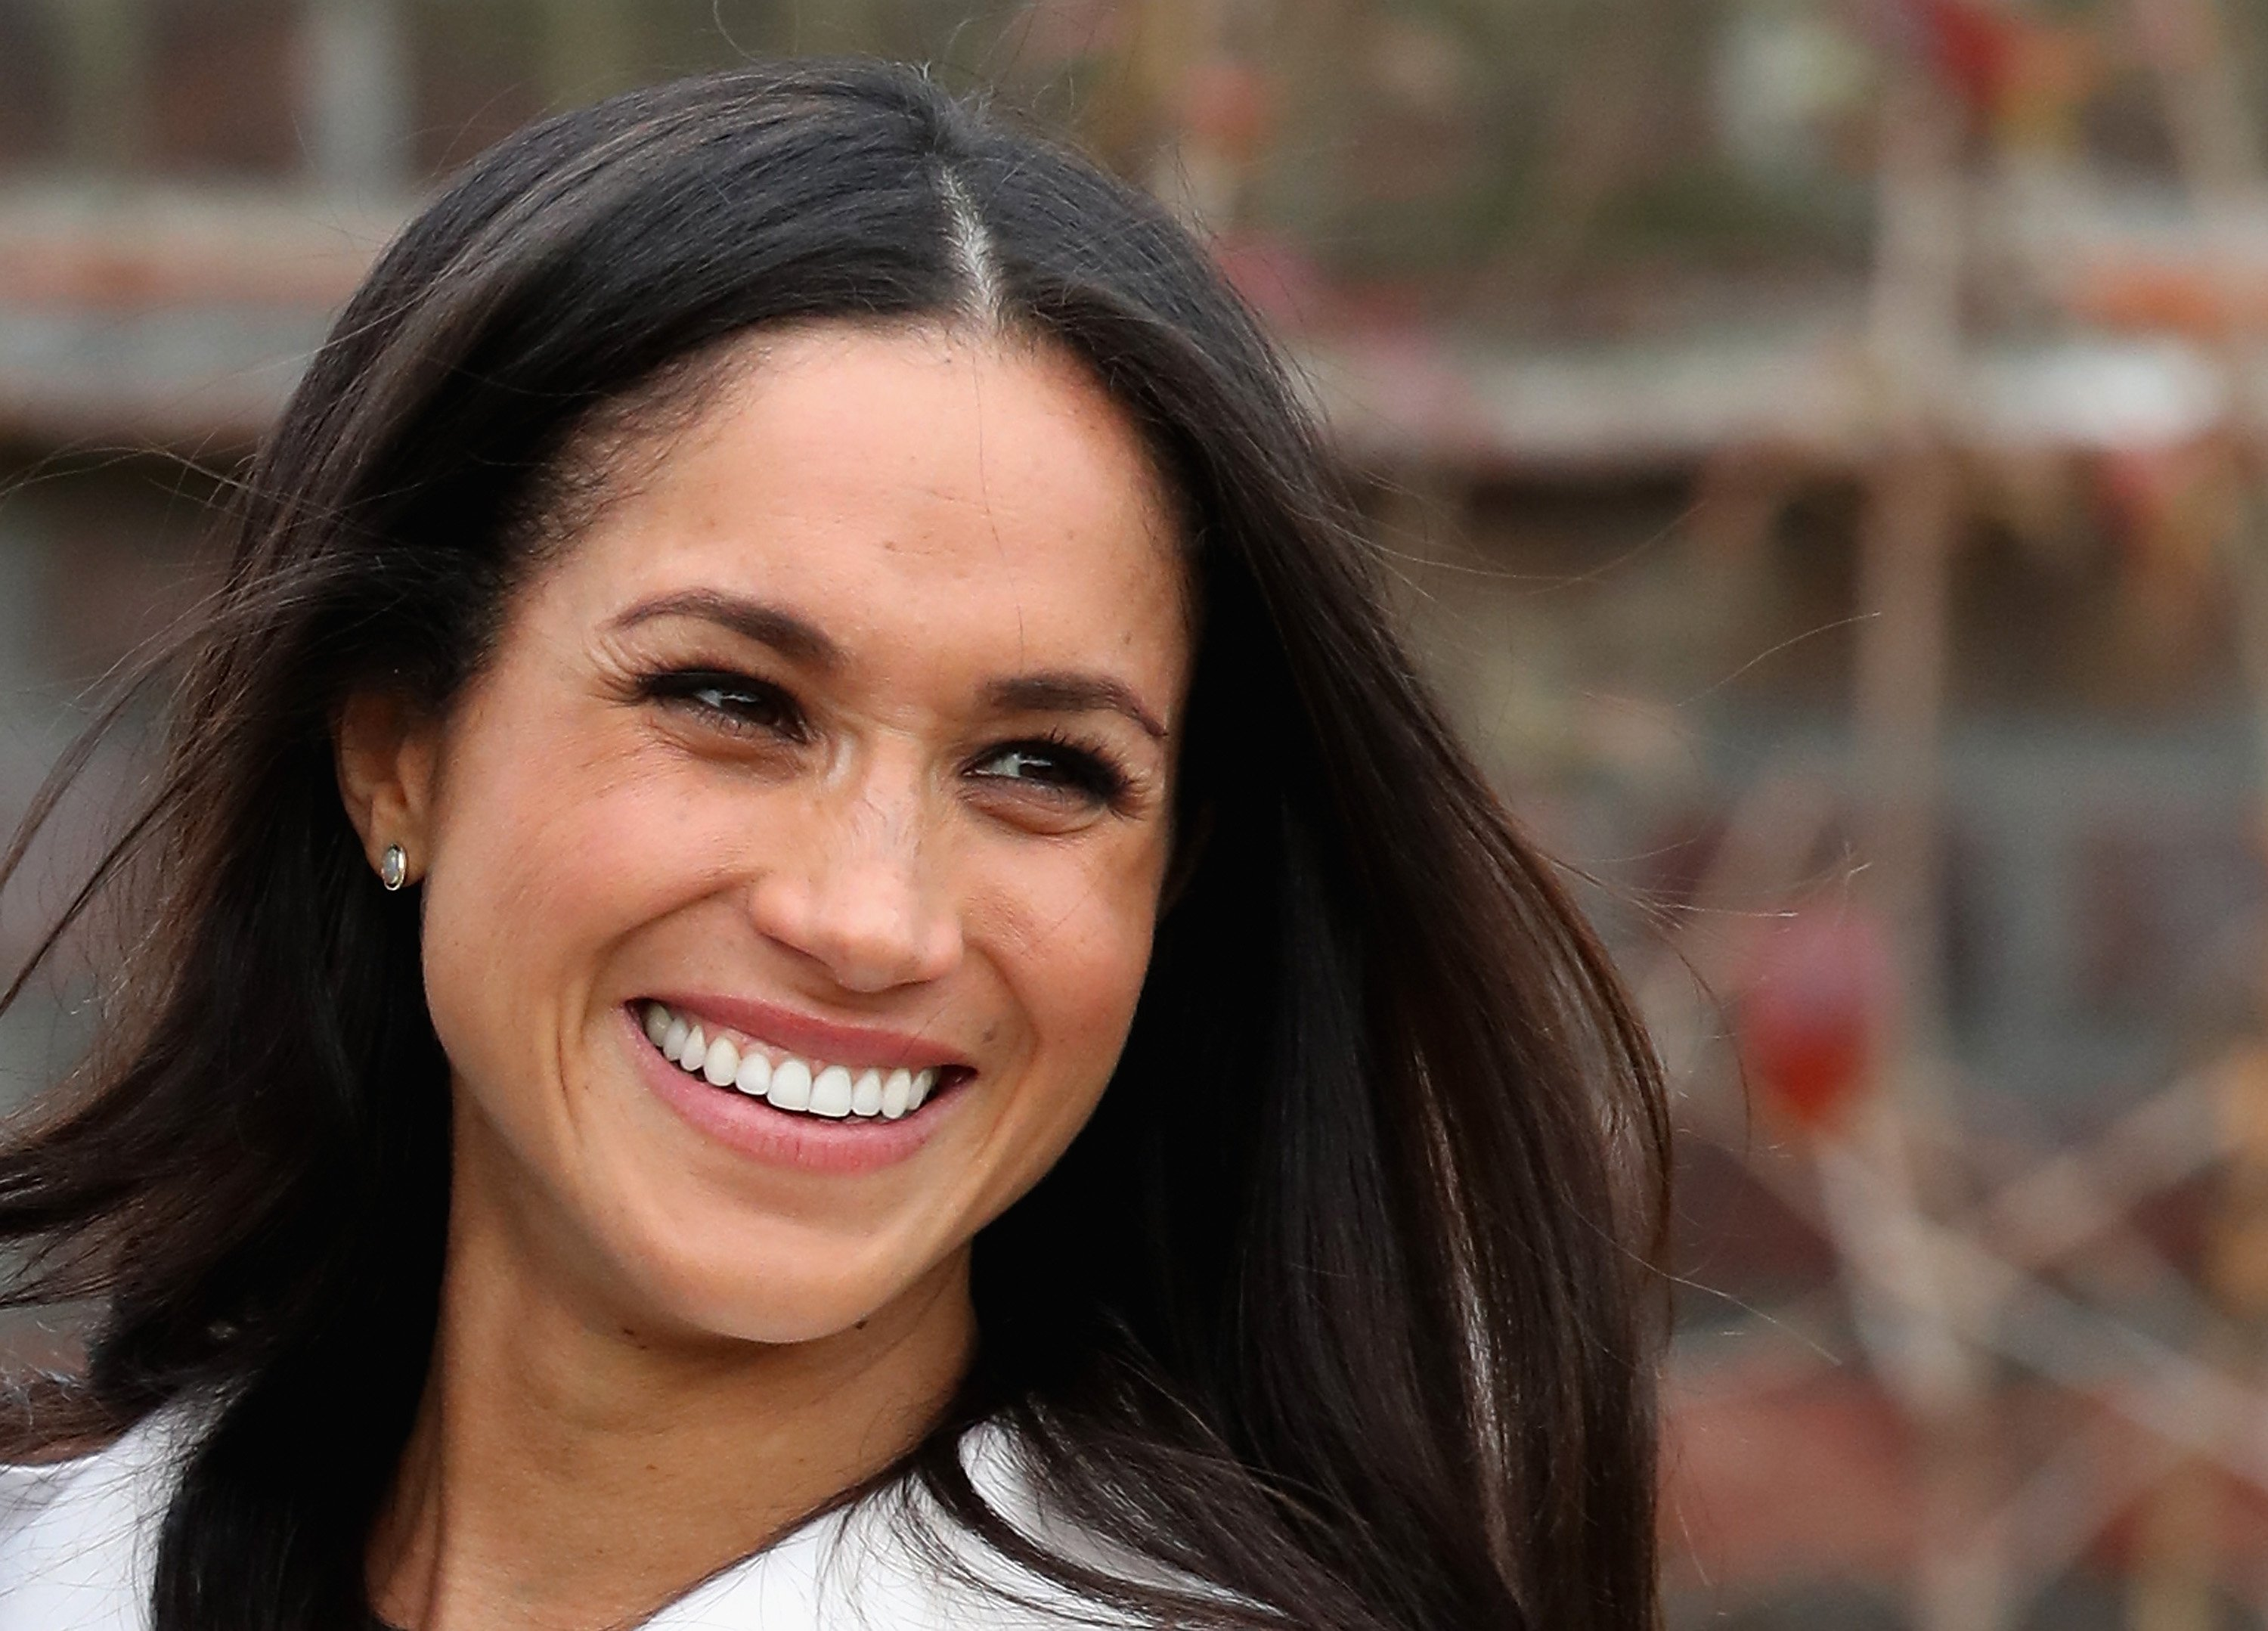 Image Source: Getty Images/A photo of Meghan Markle